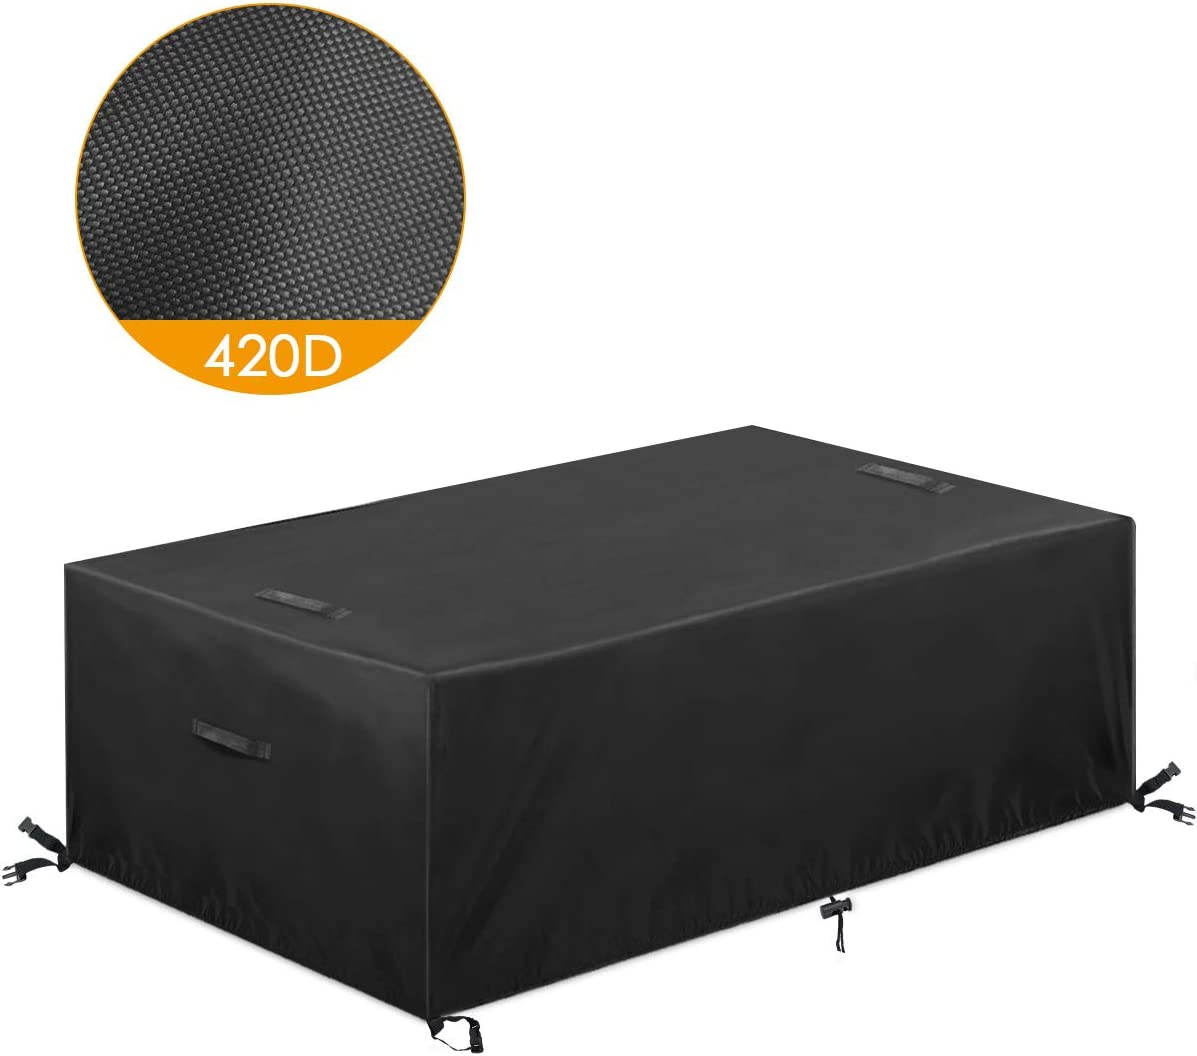 ESSORT Patio Furniture Covers, 420D Extra Large Outdoor Furniture Set Covers Waterproof, Rain Snow Dust Wind-Proof, Anti-UV, Fits for 6-8 Seats